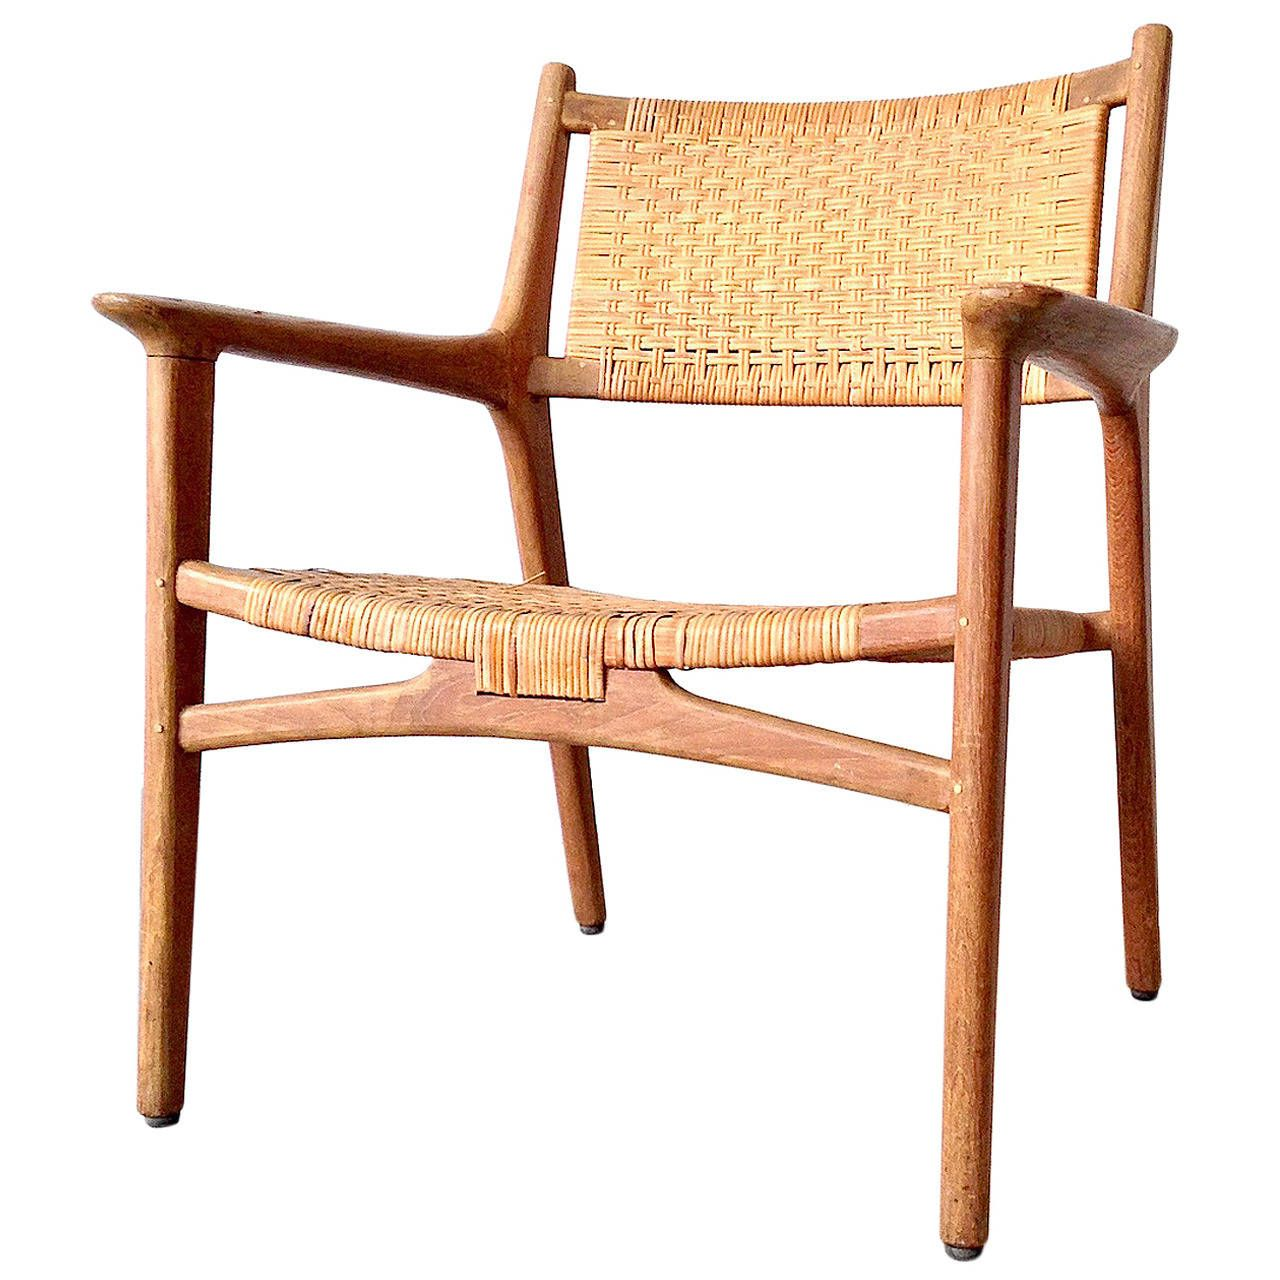 Hans J. Wegner For Johannes Hansen Teak Cane Easy Chair, 1951